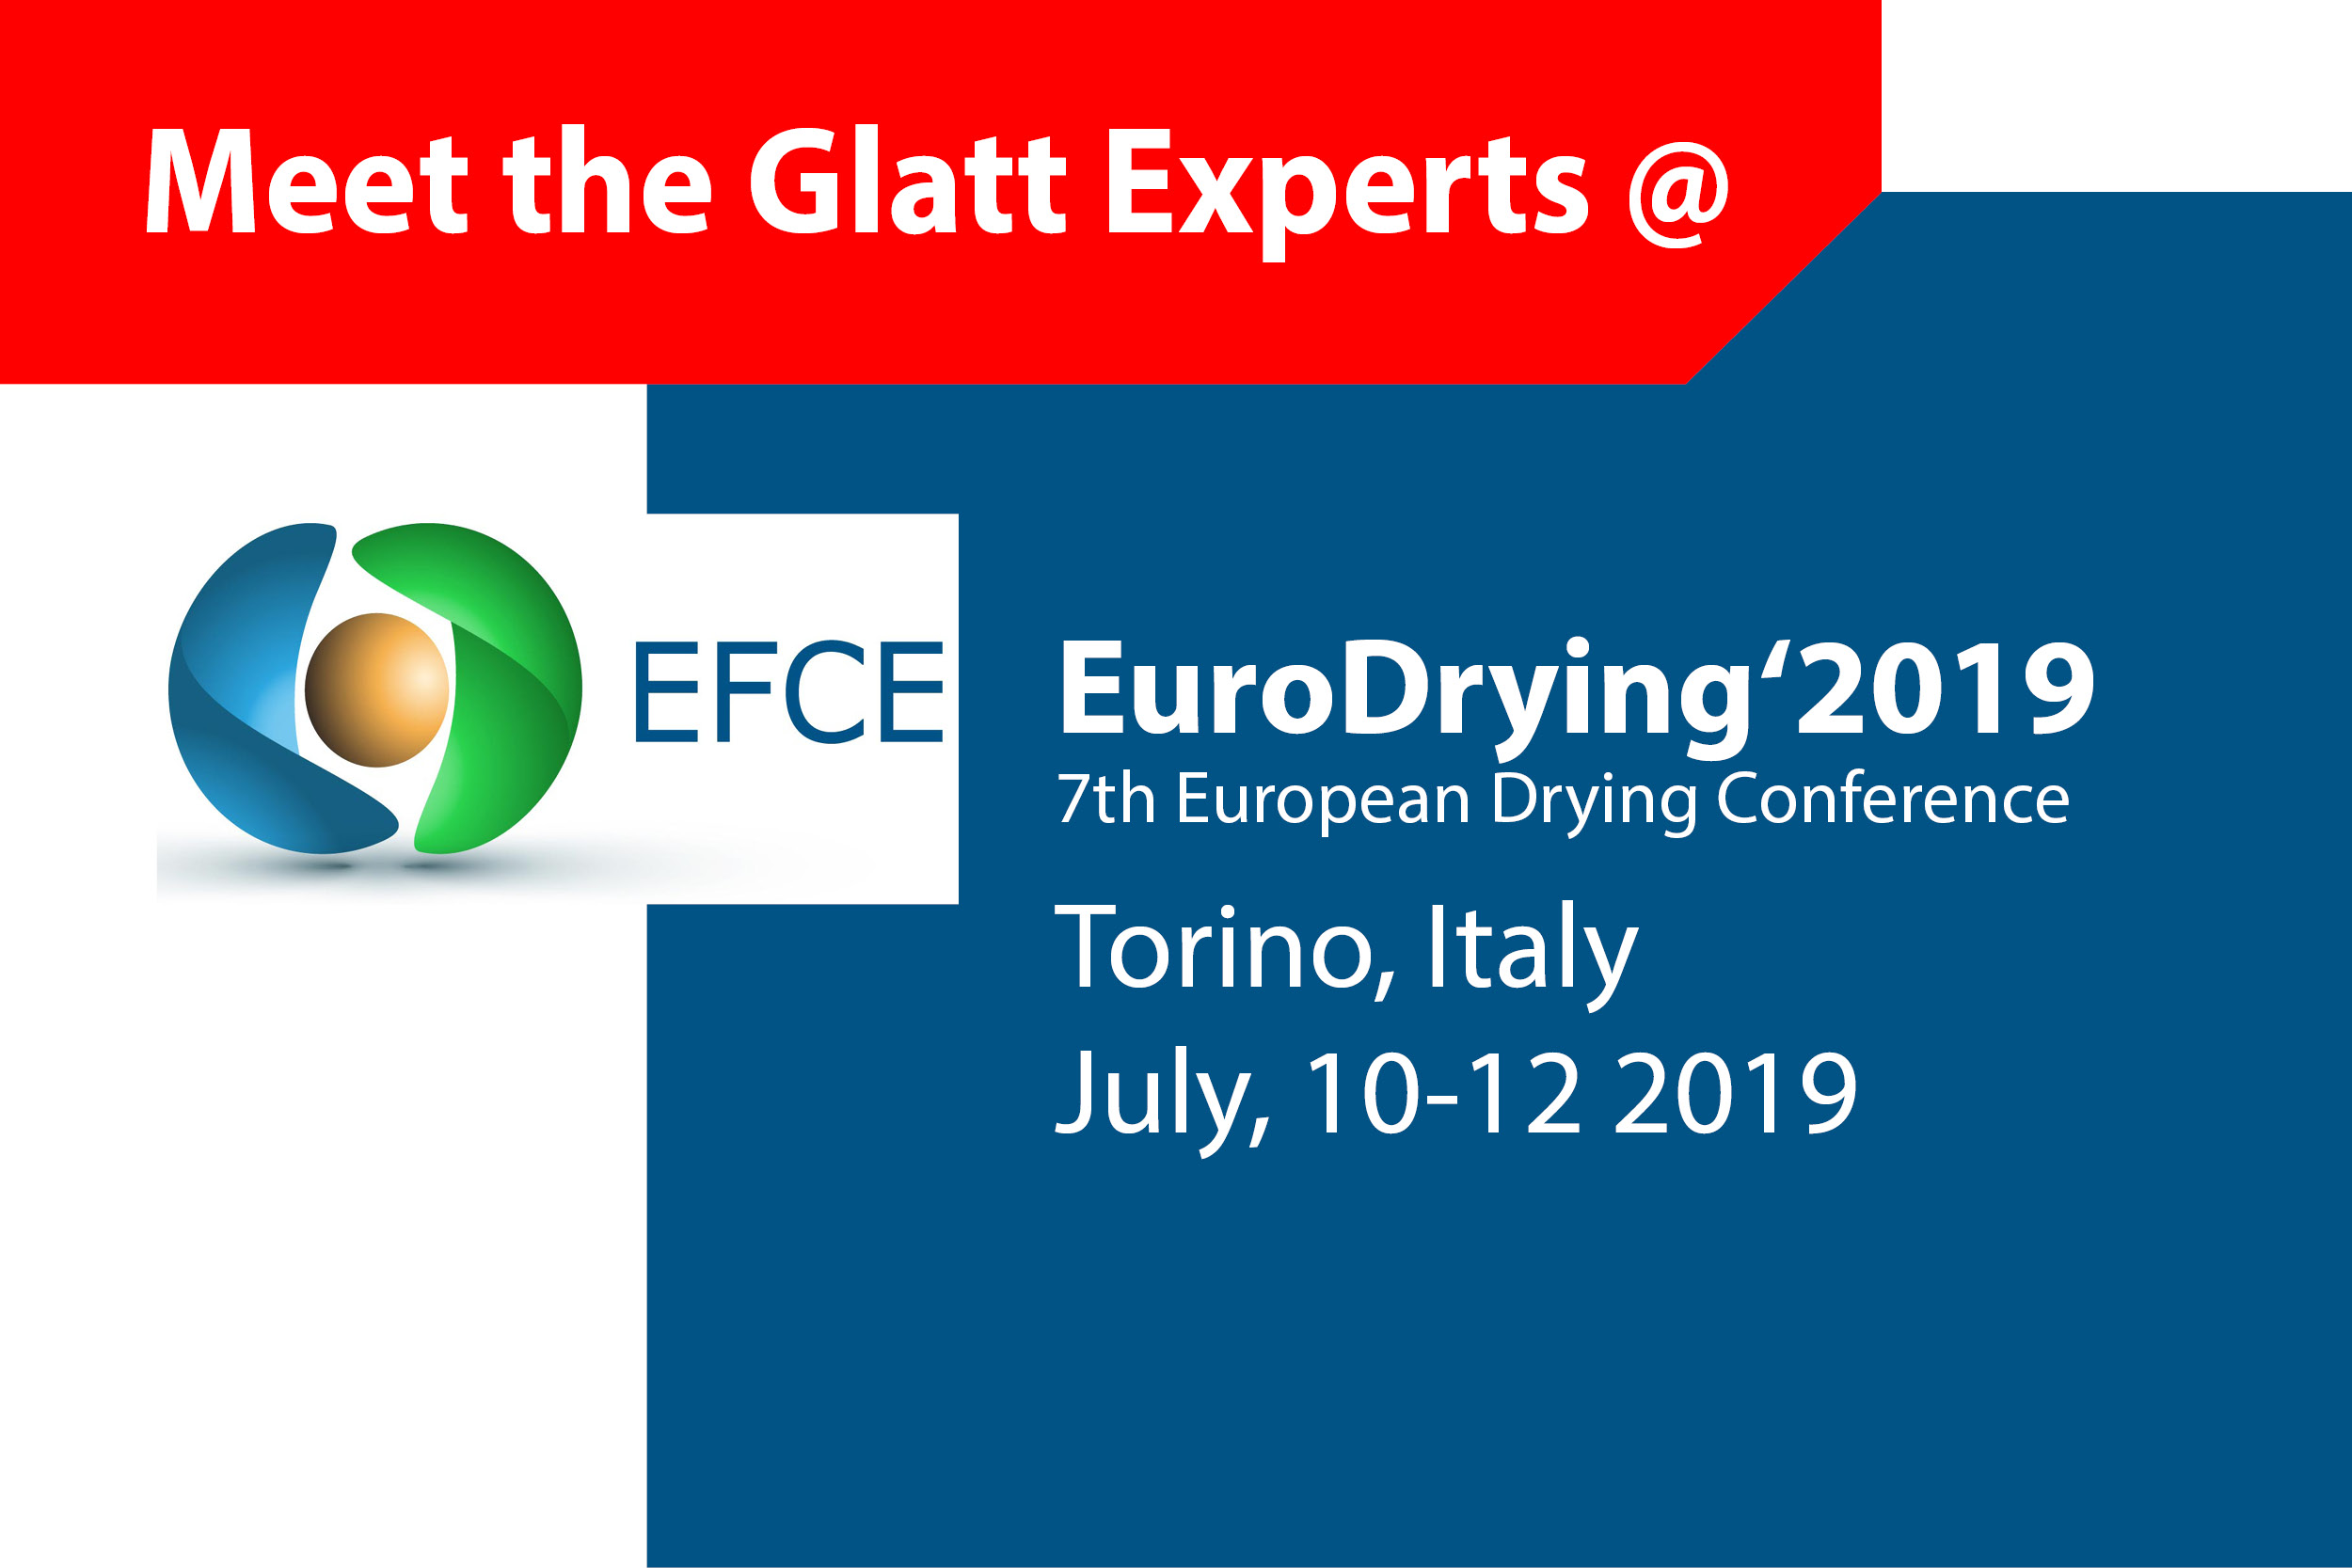 Meet the Glatt Experts @ EuroDrying2019 in Turin, Italien